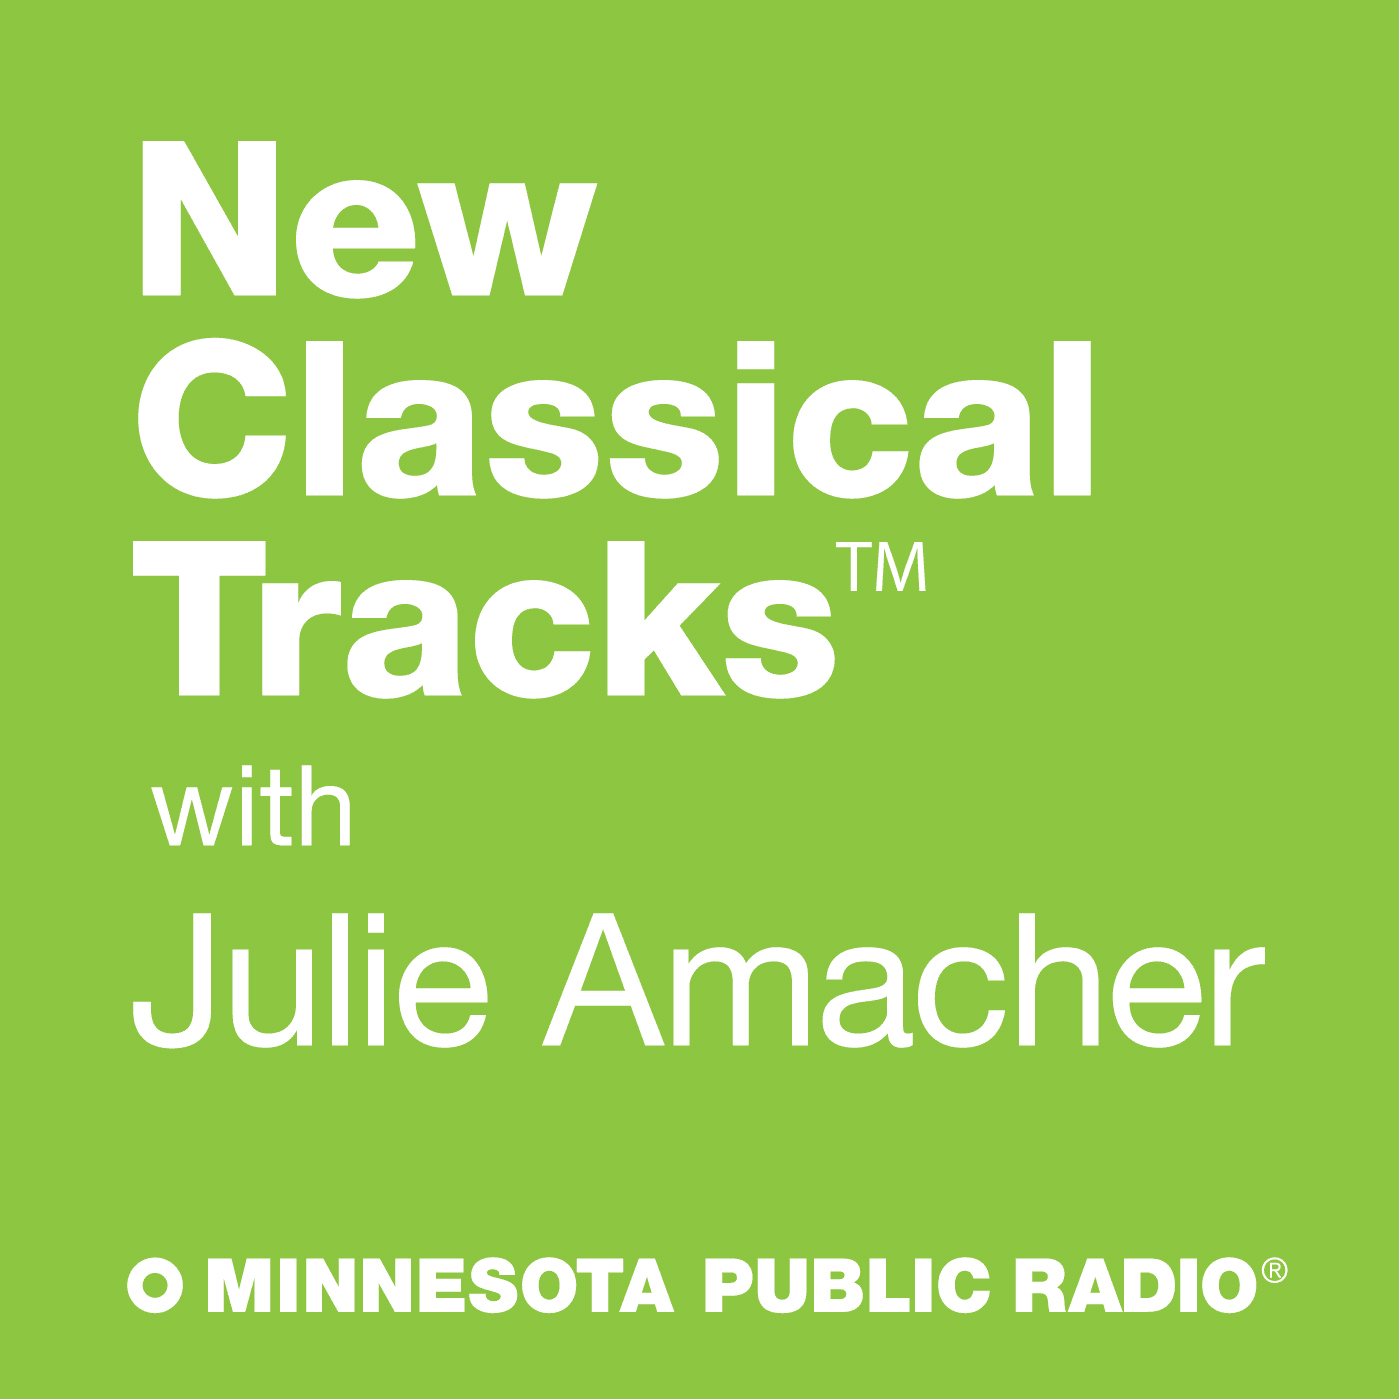 New Classical Tracks Podcast